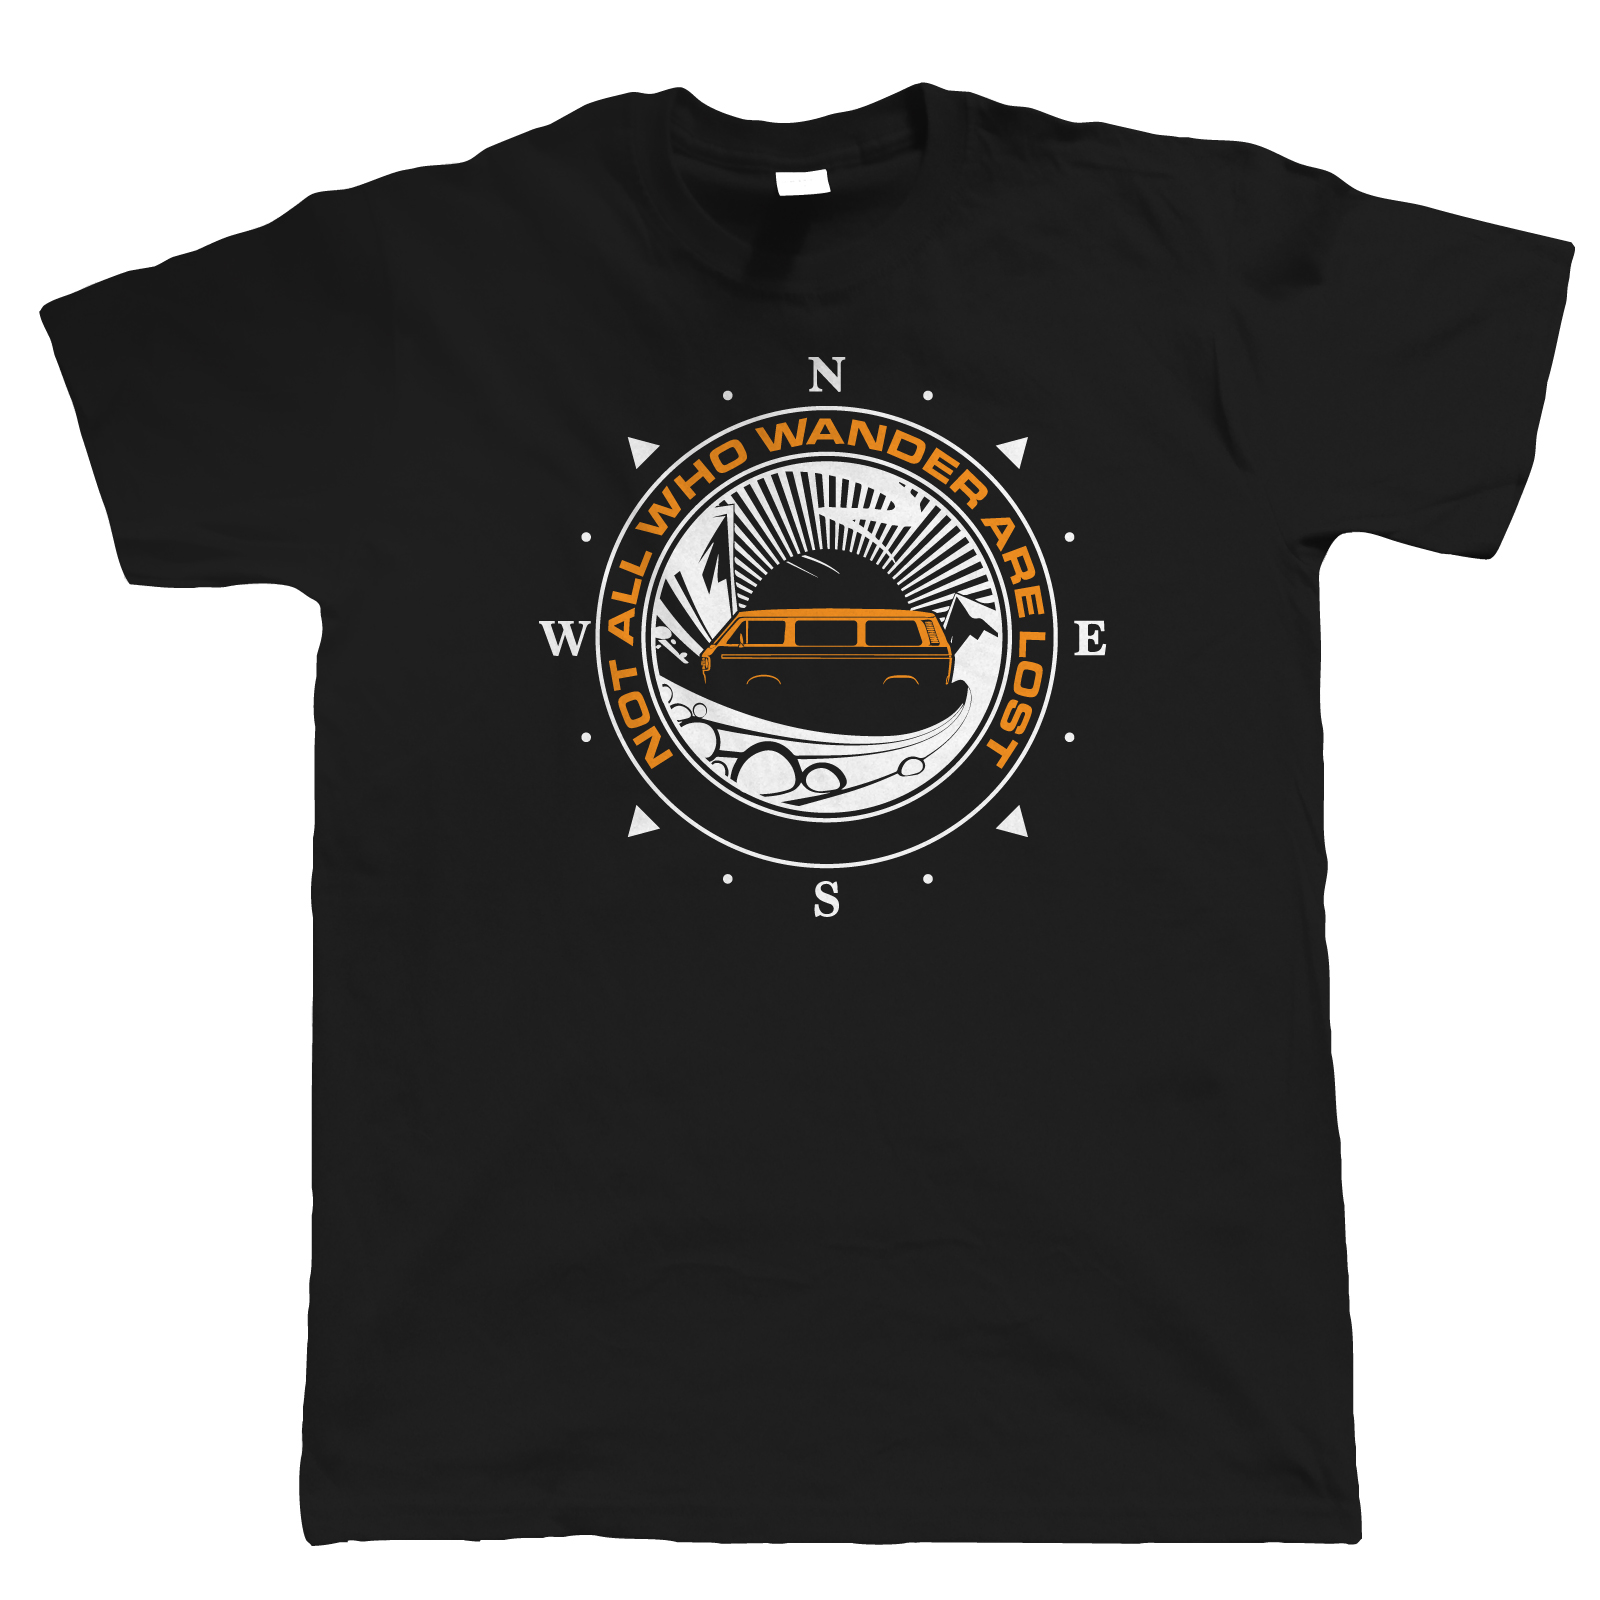 Not All Who Wander Are Lost Campervan T Shirt, T25 Campinger Gift for Him Dad Summer Man T-Shirt Tops Tees New